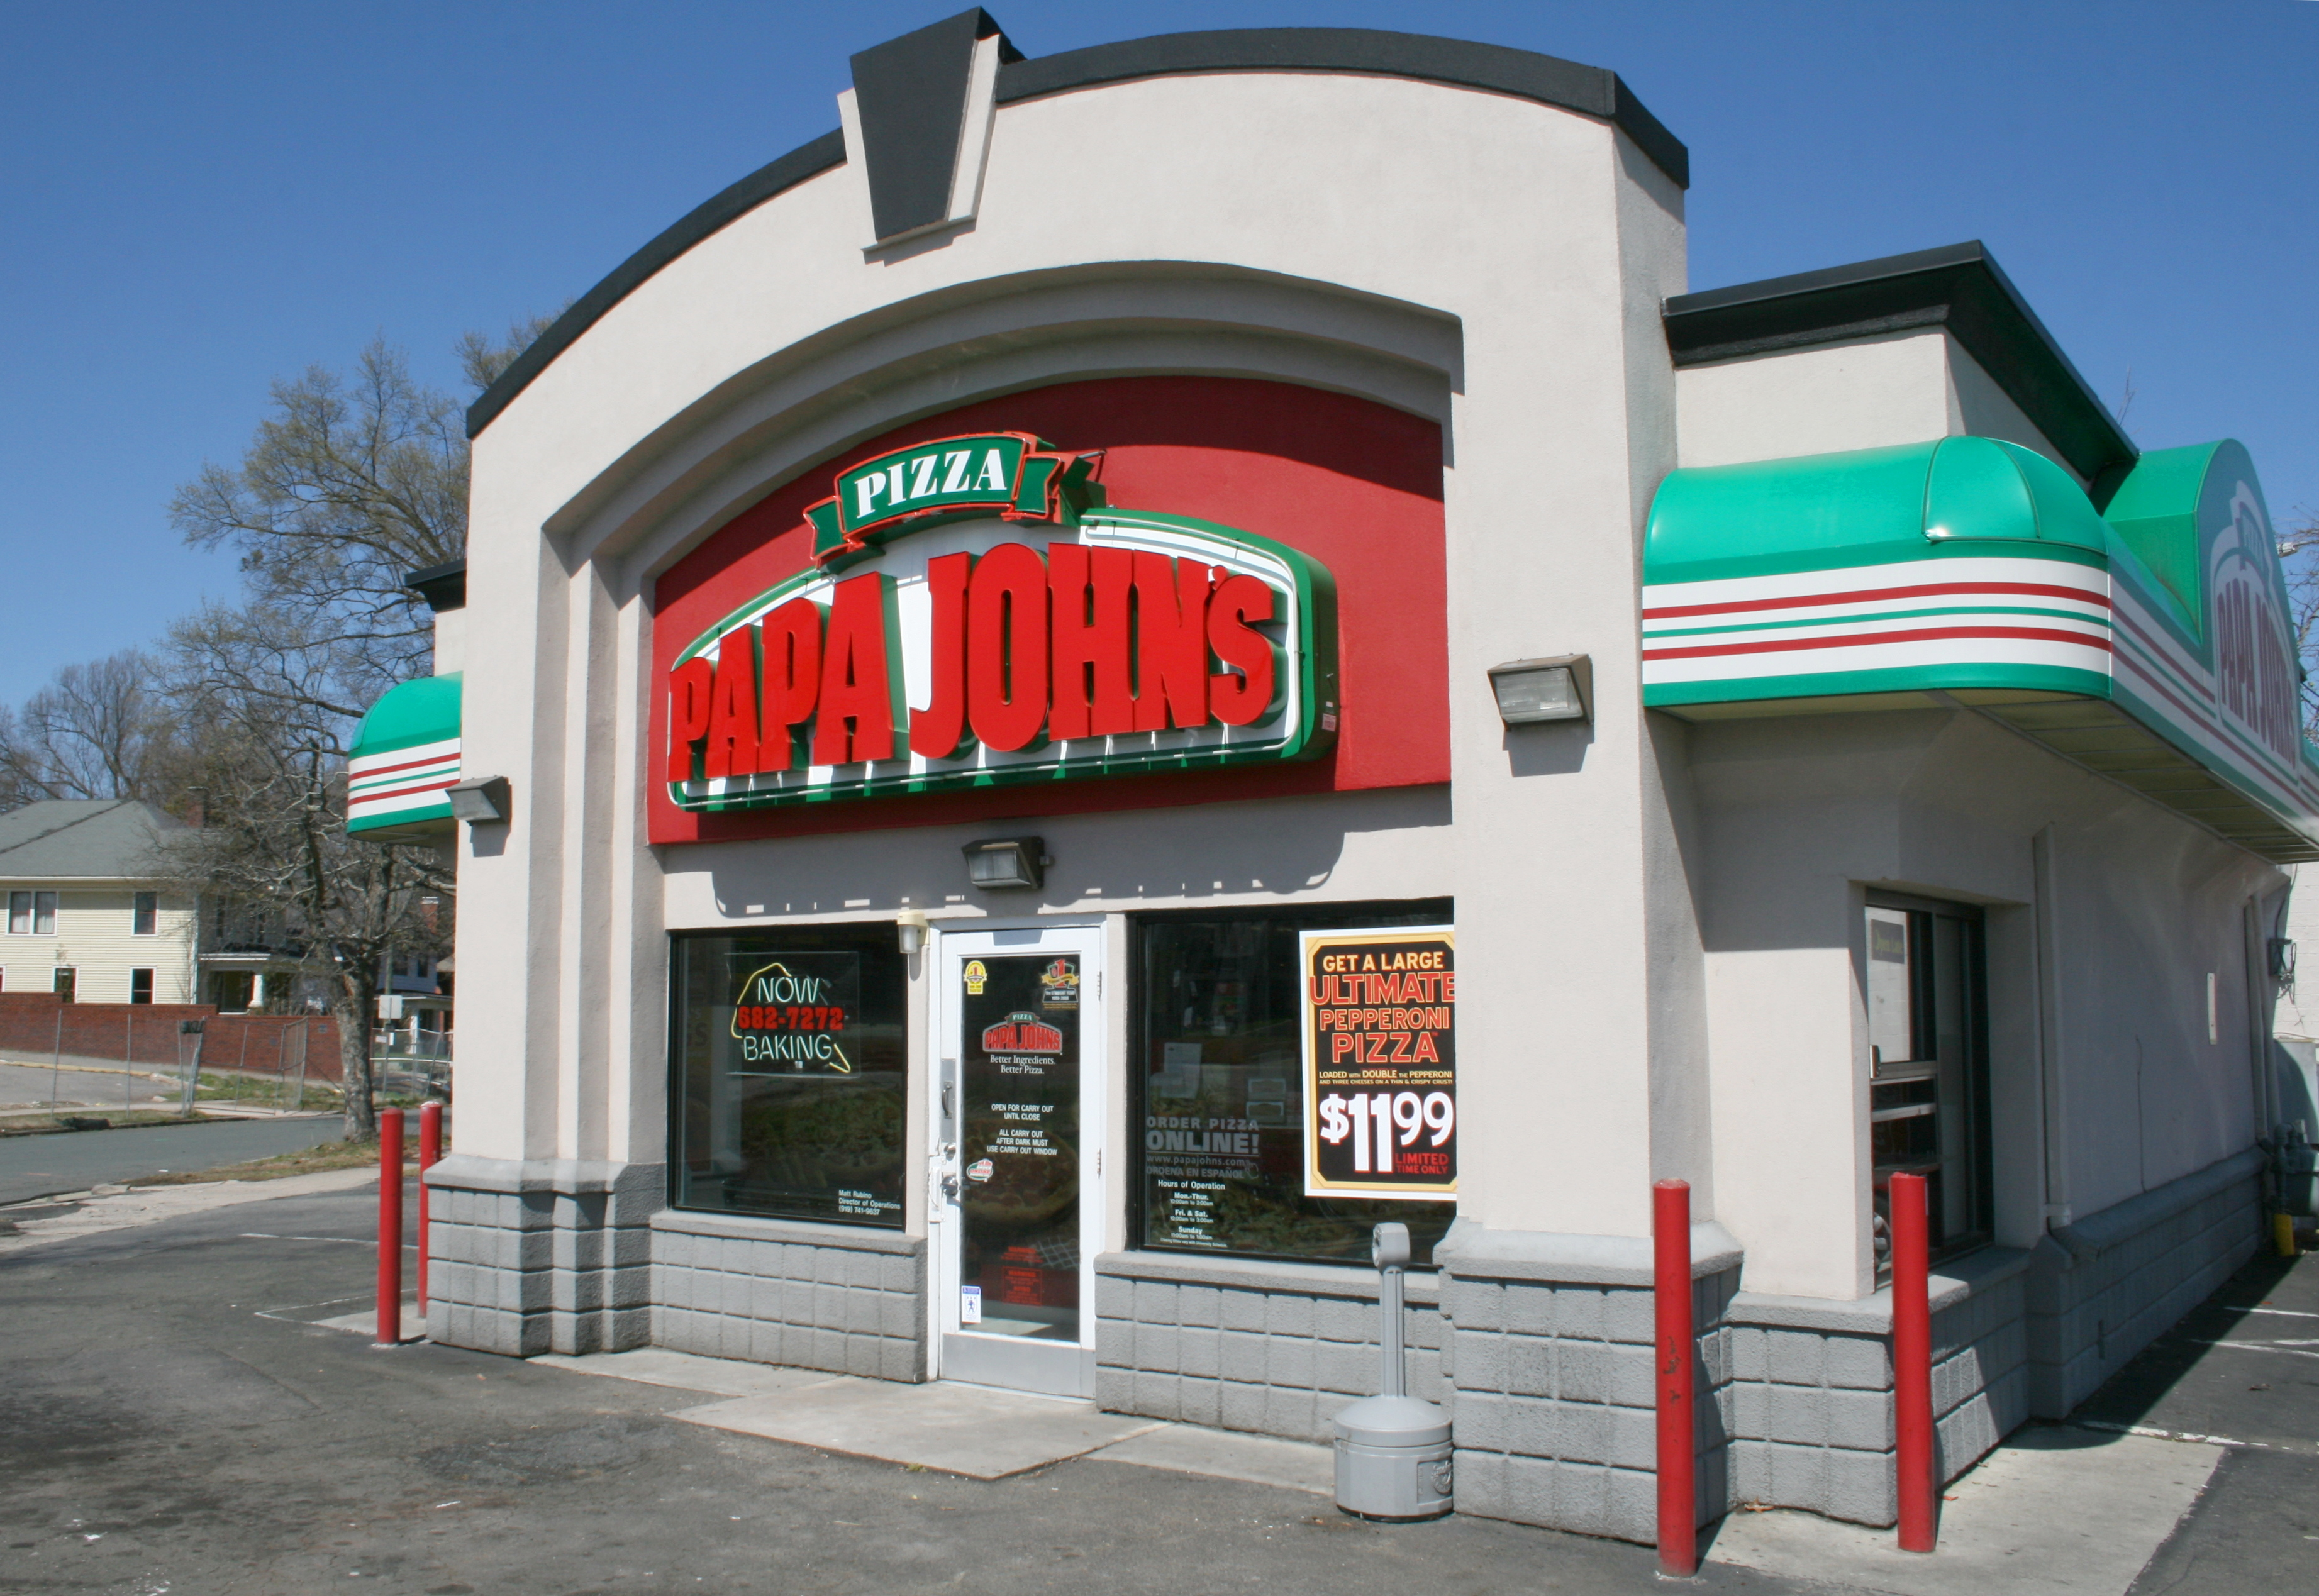 Papa Johns and many other U.S. franchises are seeing growth as people take their job security into their own hands. Image from Wikimedia.